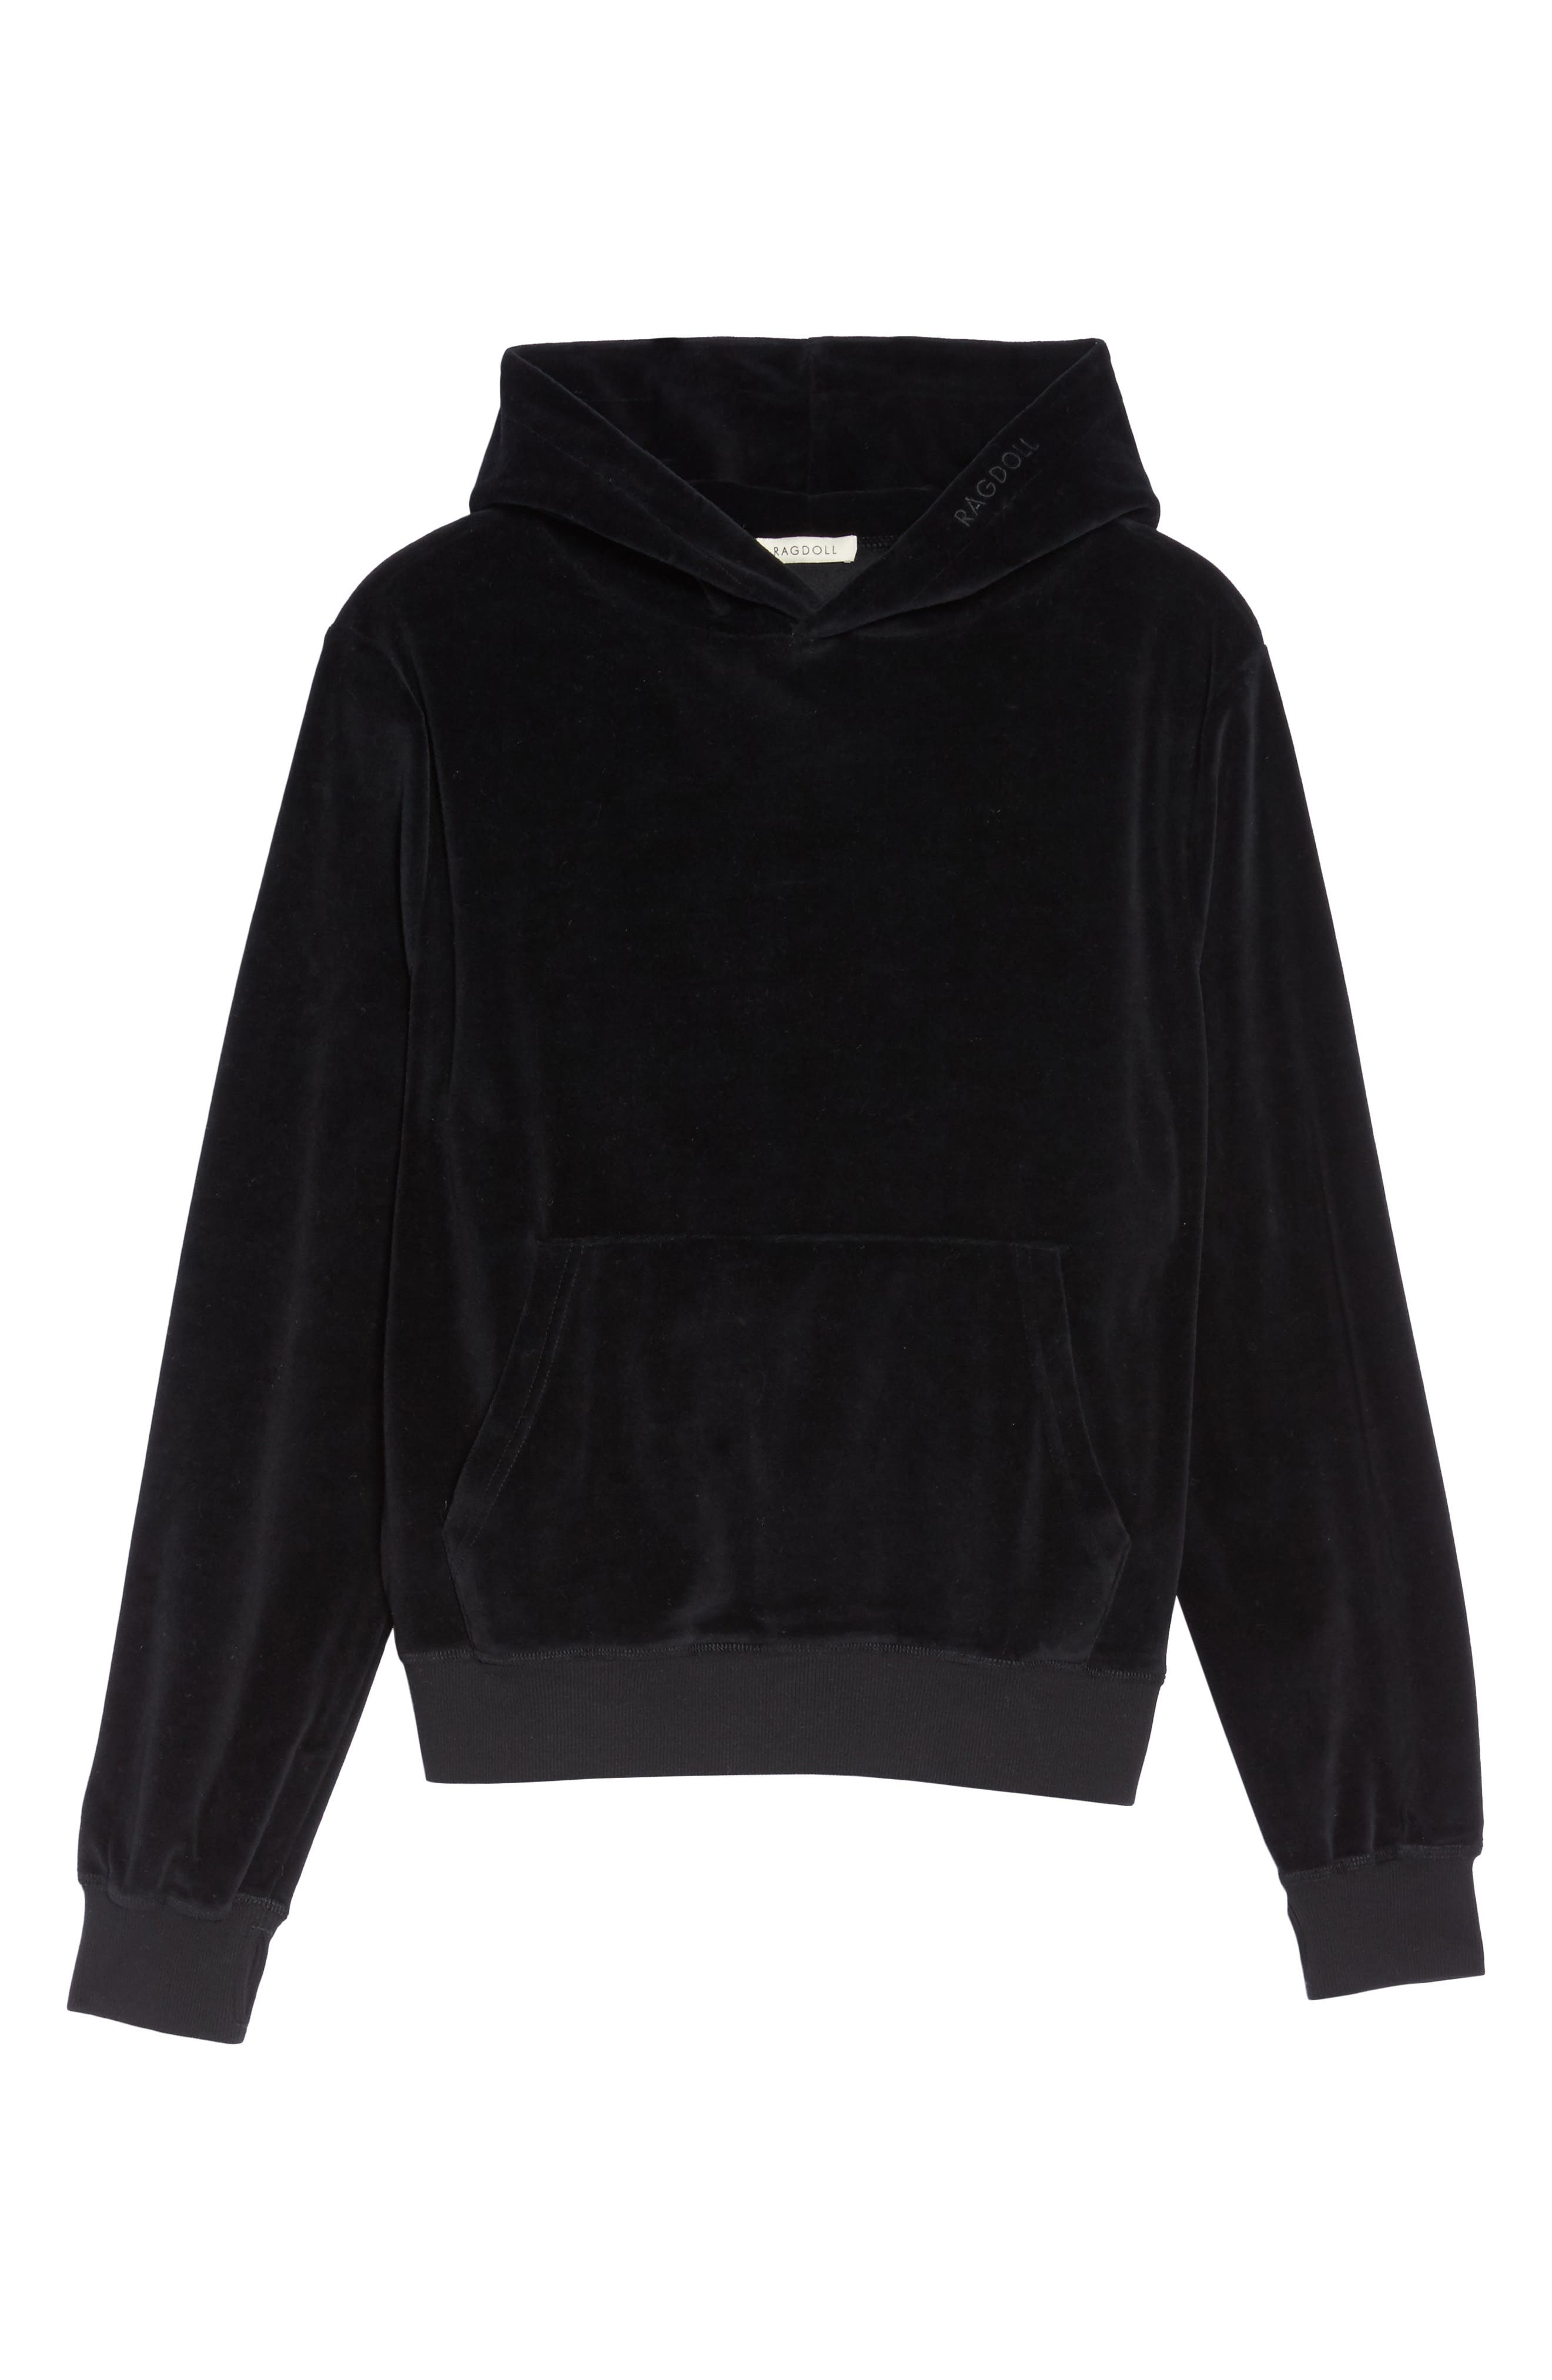 Pullover Hoodie,                             Alternate thumbnail 6, color,                             001